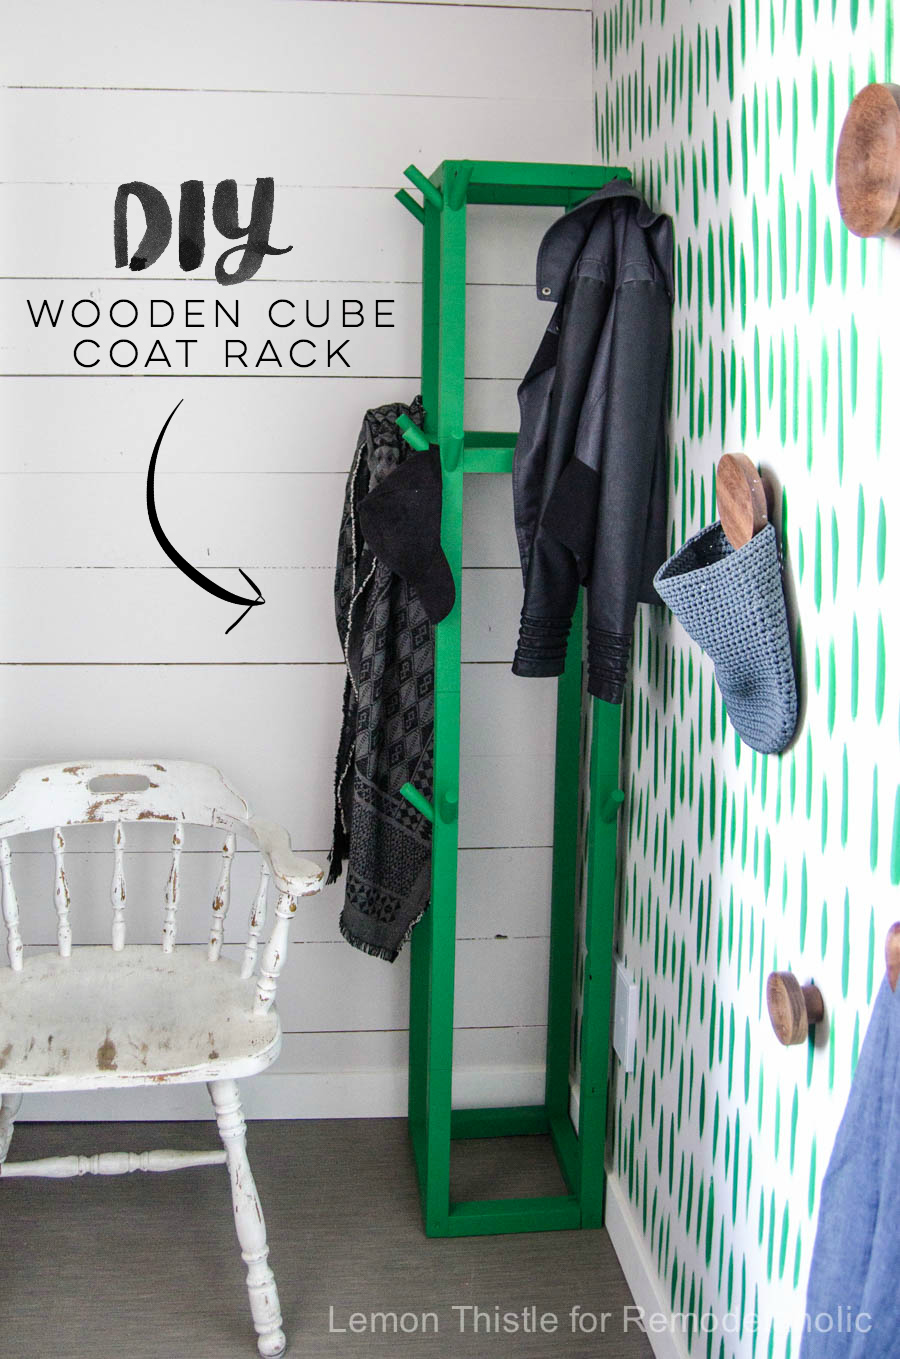 ... I Love This DIY Wooden Coat Rack  The Cube Shape And Green Paint Is So